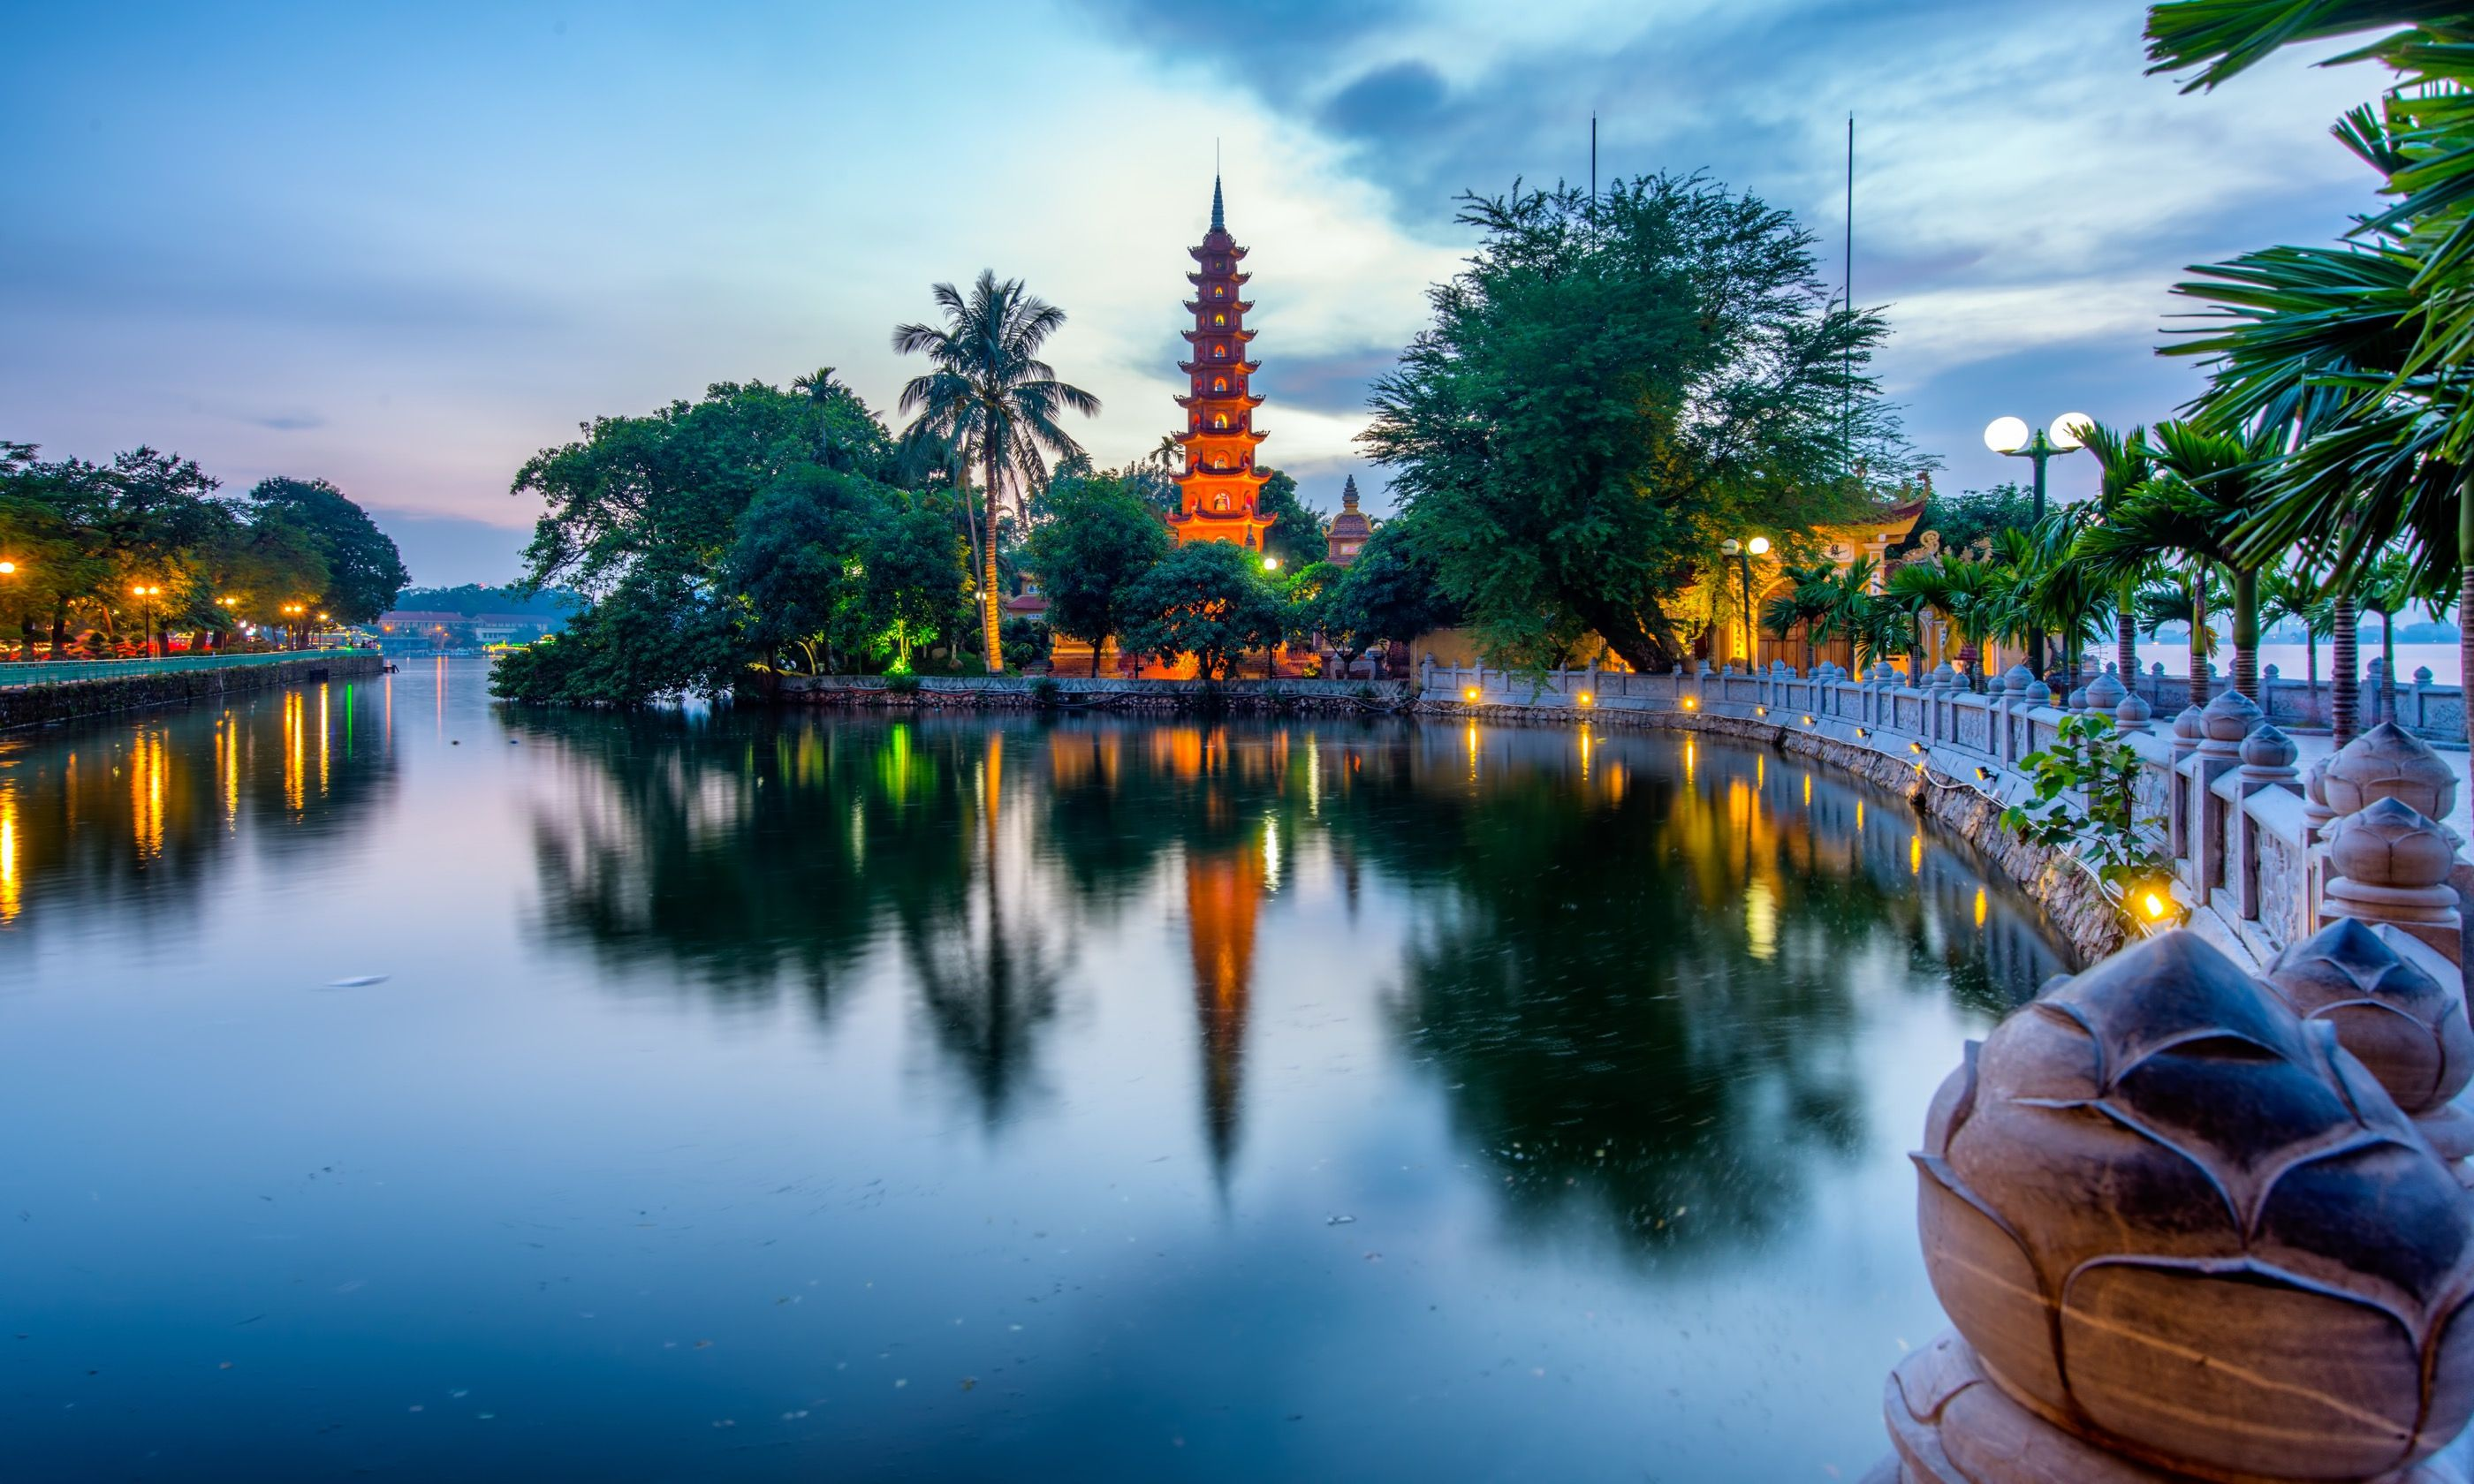 Tran Quoc Pagoda at sunset (Dreamstime)